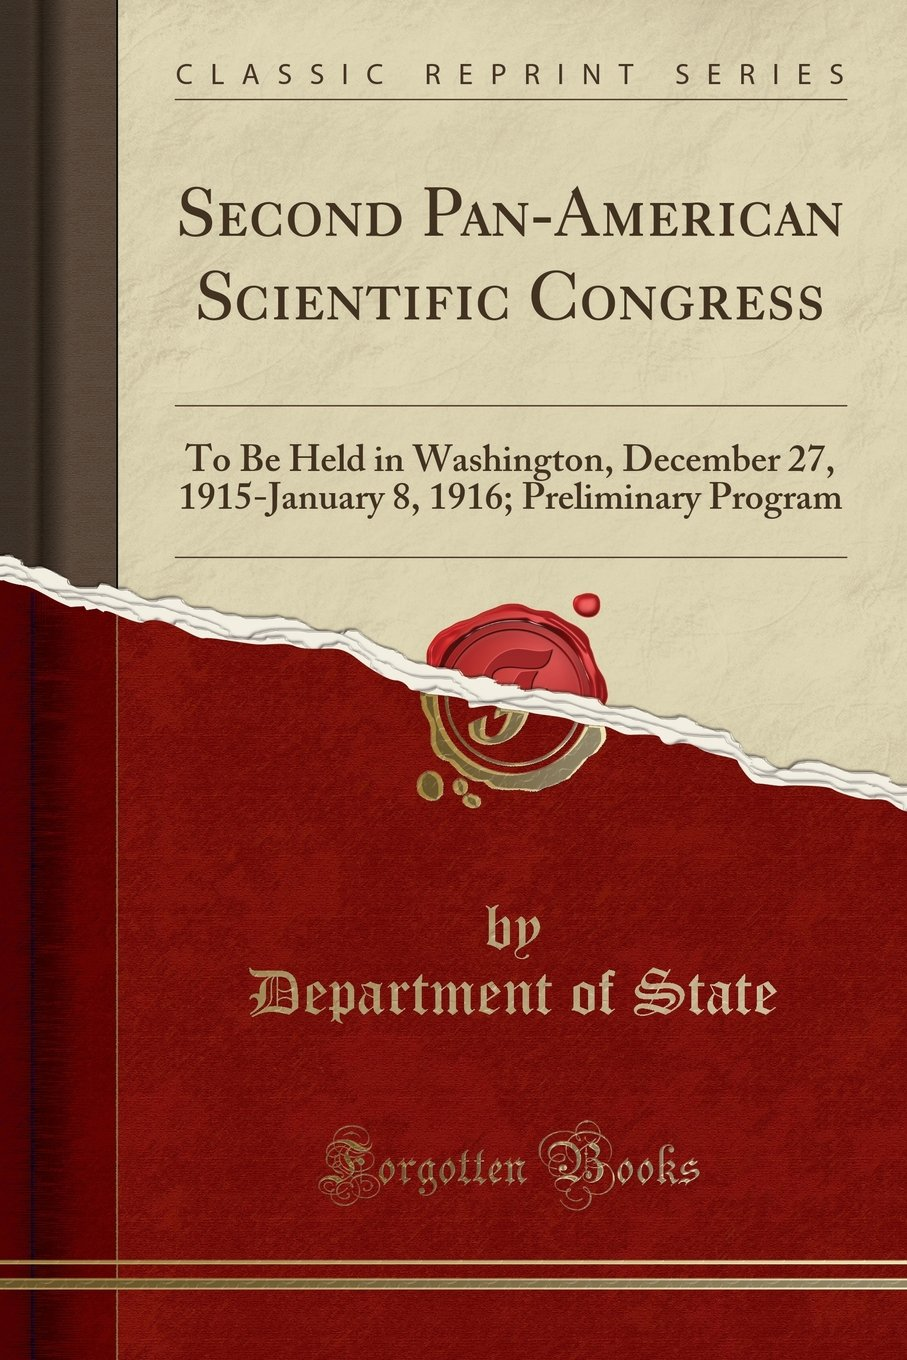 Download Second Pan-American Scientific Congress: To Be Held in Washington, December 27, 1915-January 8, 1916; Preliminary Program (Classic Reprint) pdf